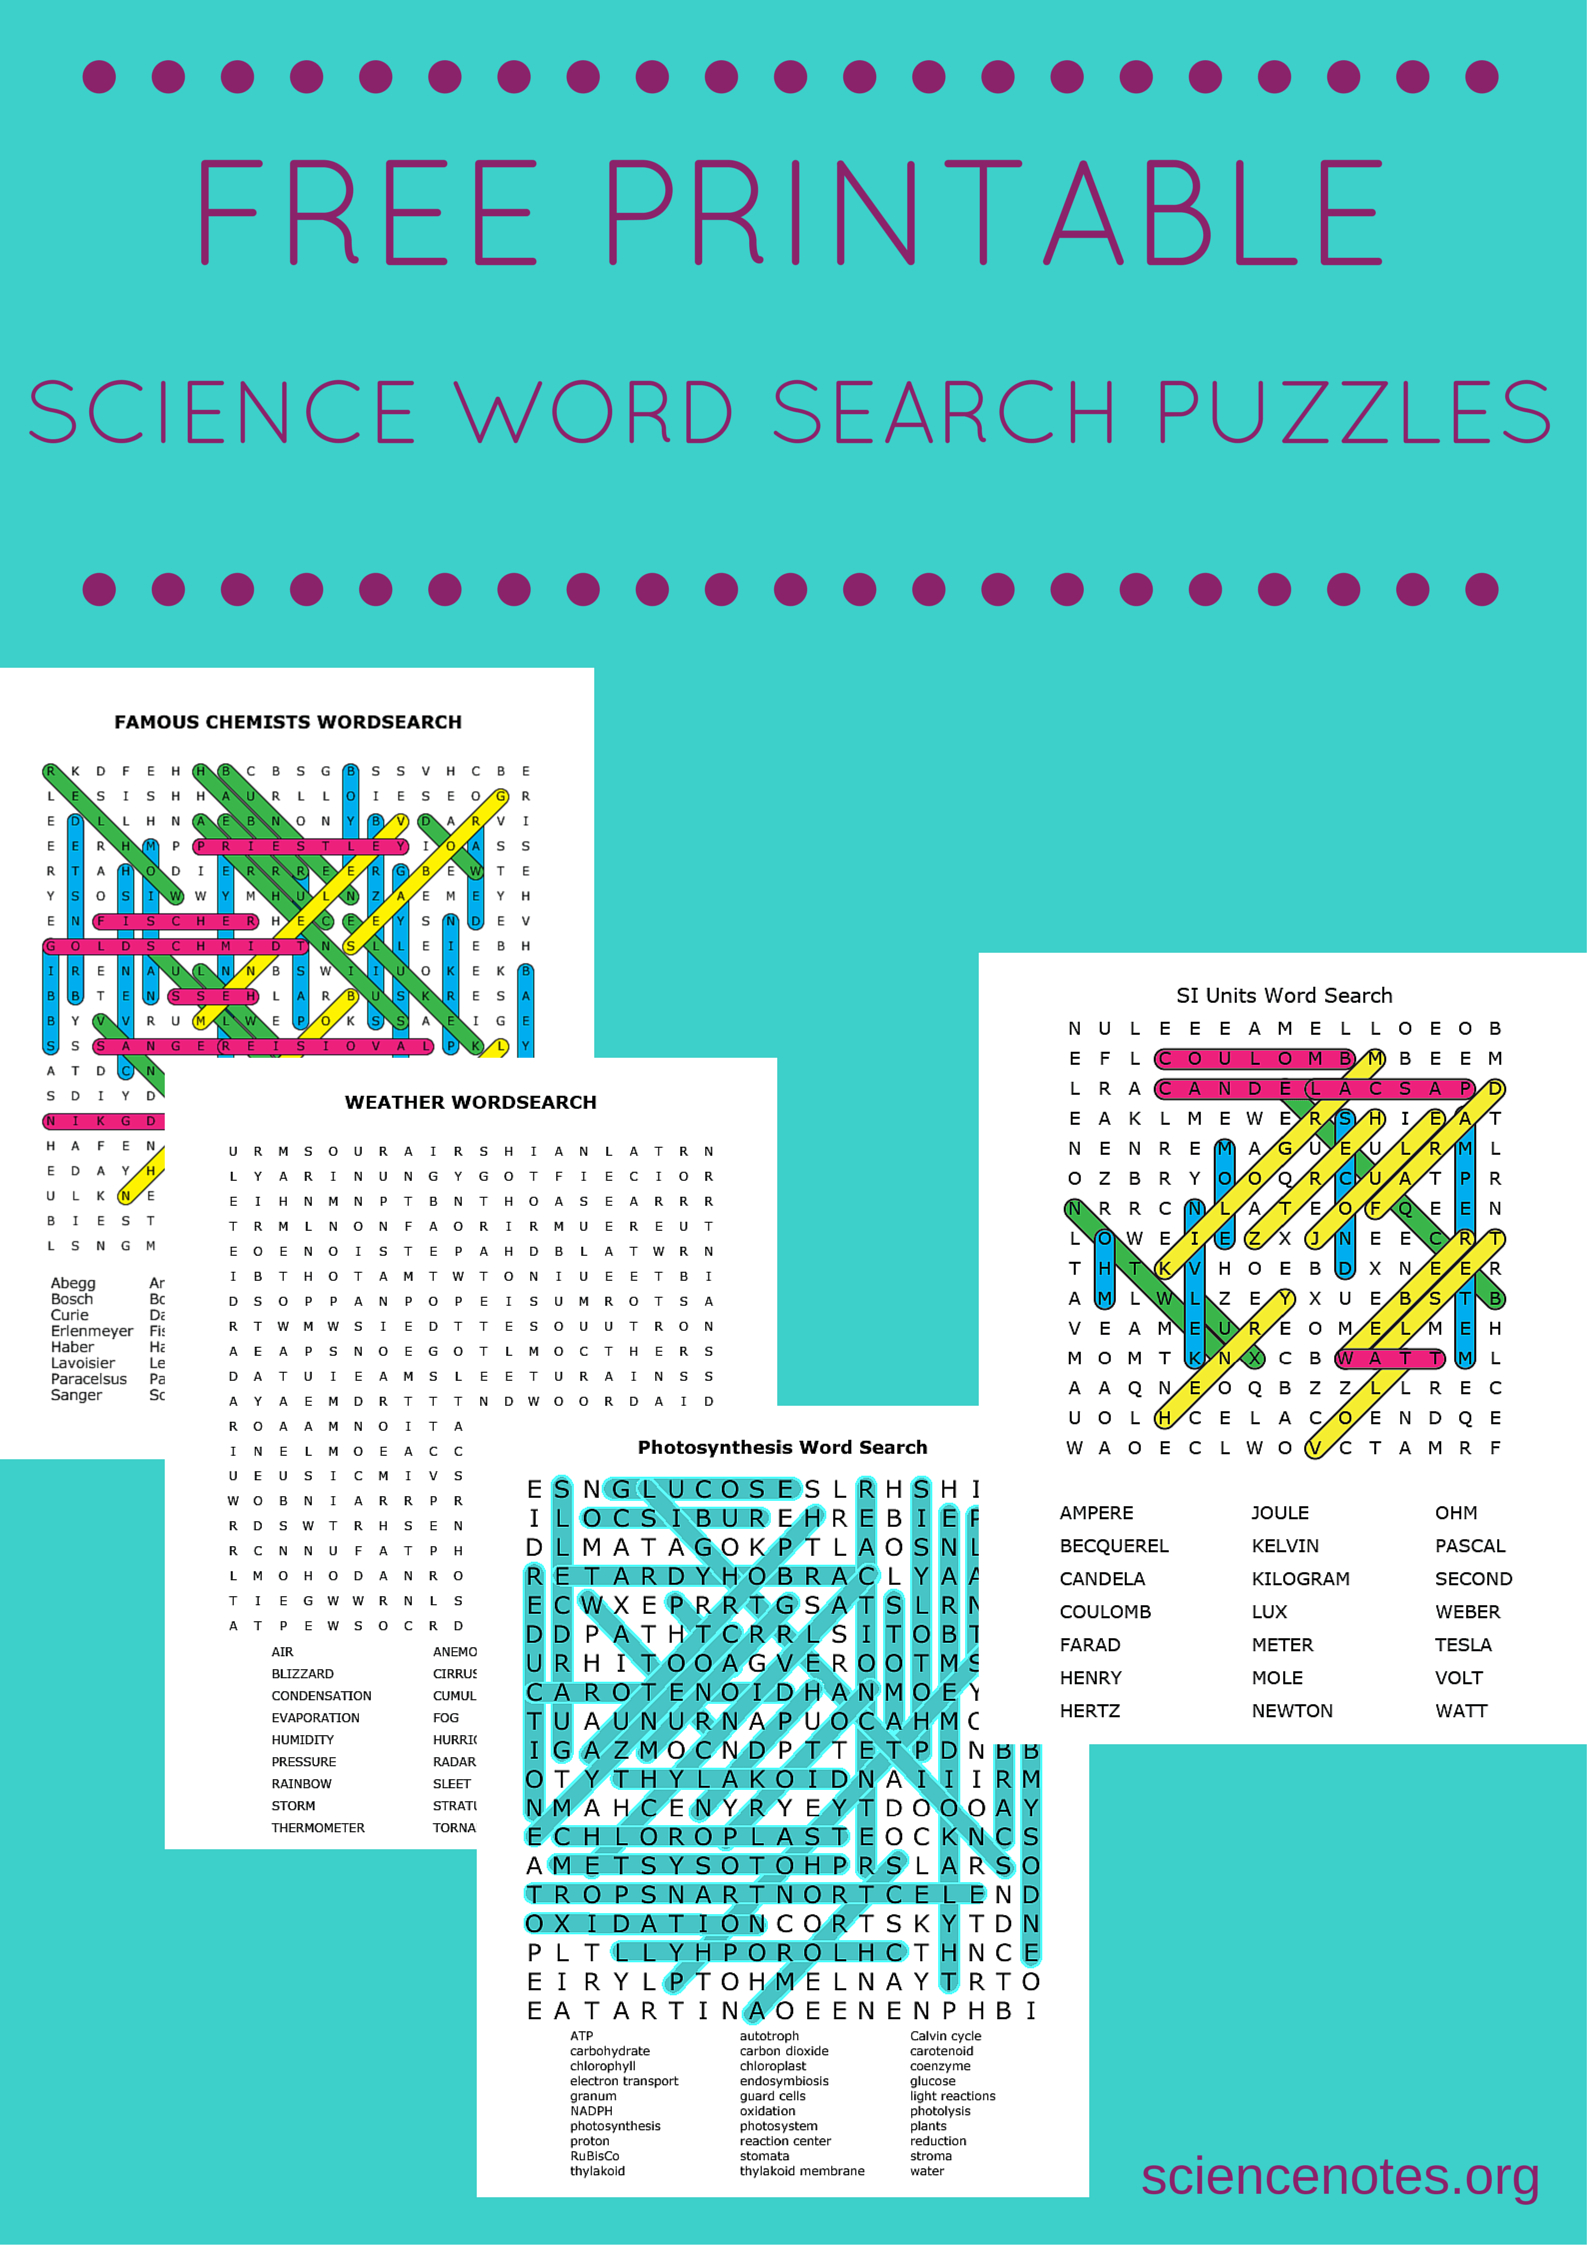 Free Printable Science Word Search Puzzles - Free Printable Science Crossword Puzzles